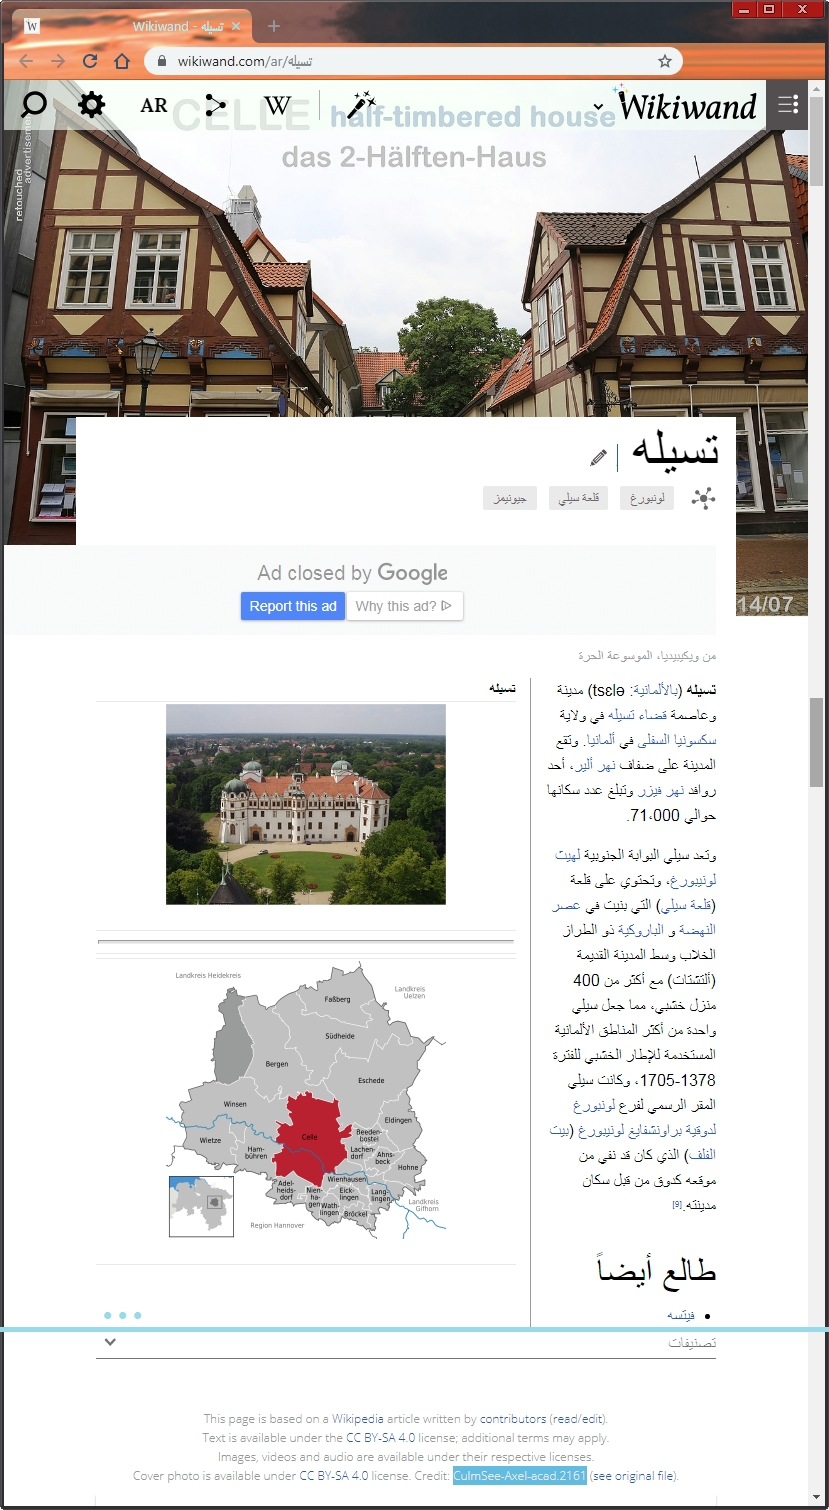 Wikiwand Celle half-timbered house Arabic